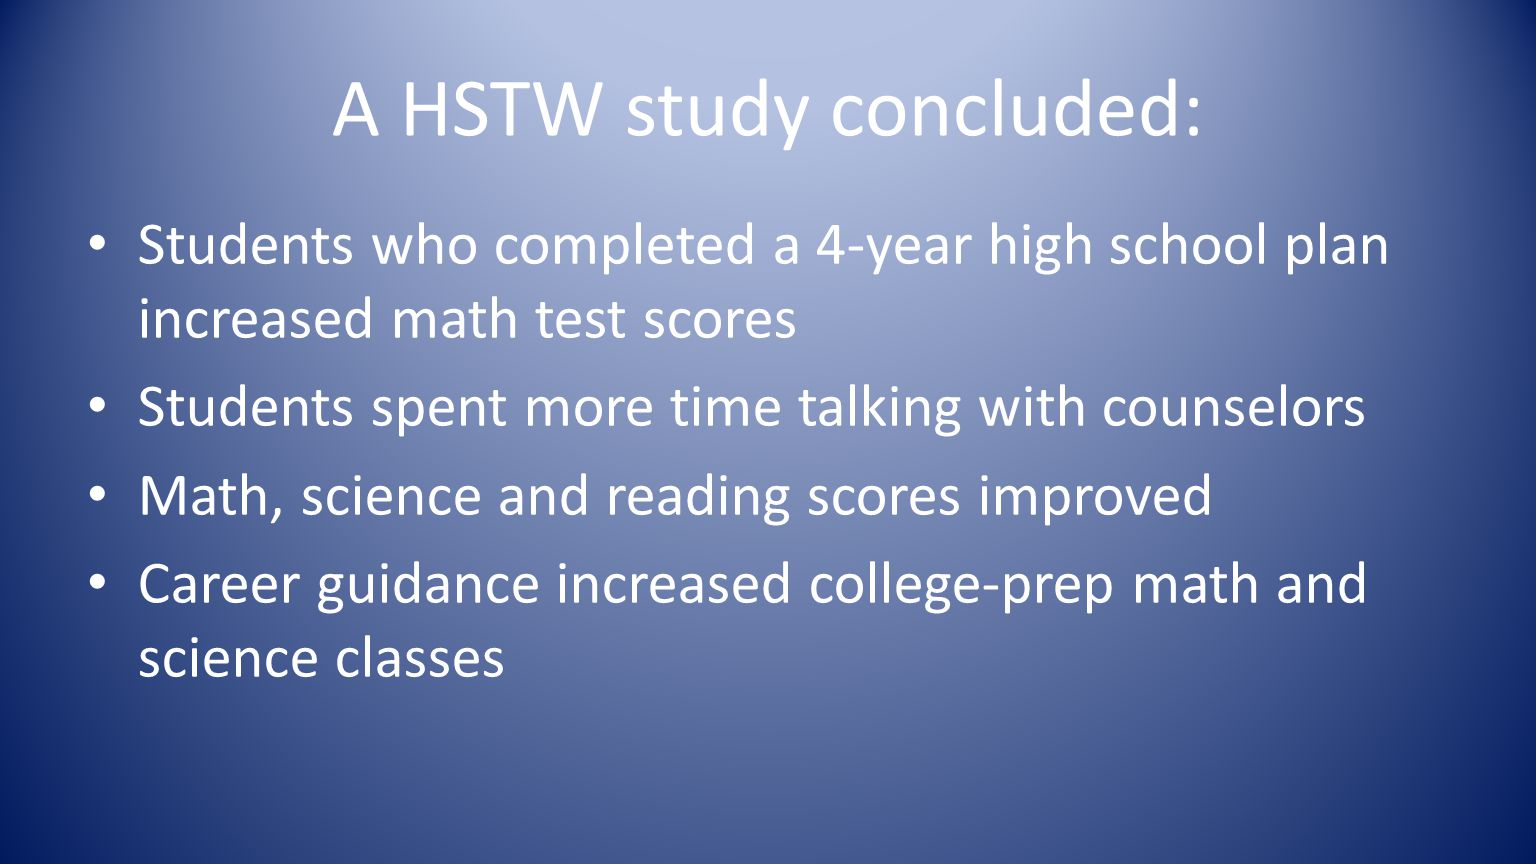 A HSTW study concluded: Students who completed a 4-year high school plan increased math test scores Students spent more time talking with counselors Math, science and reading scores improved Career guidance increased college-prep math and science classes